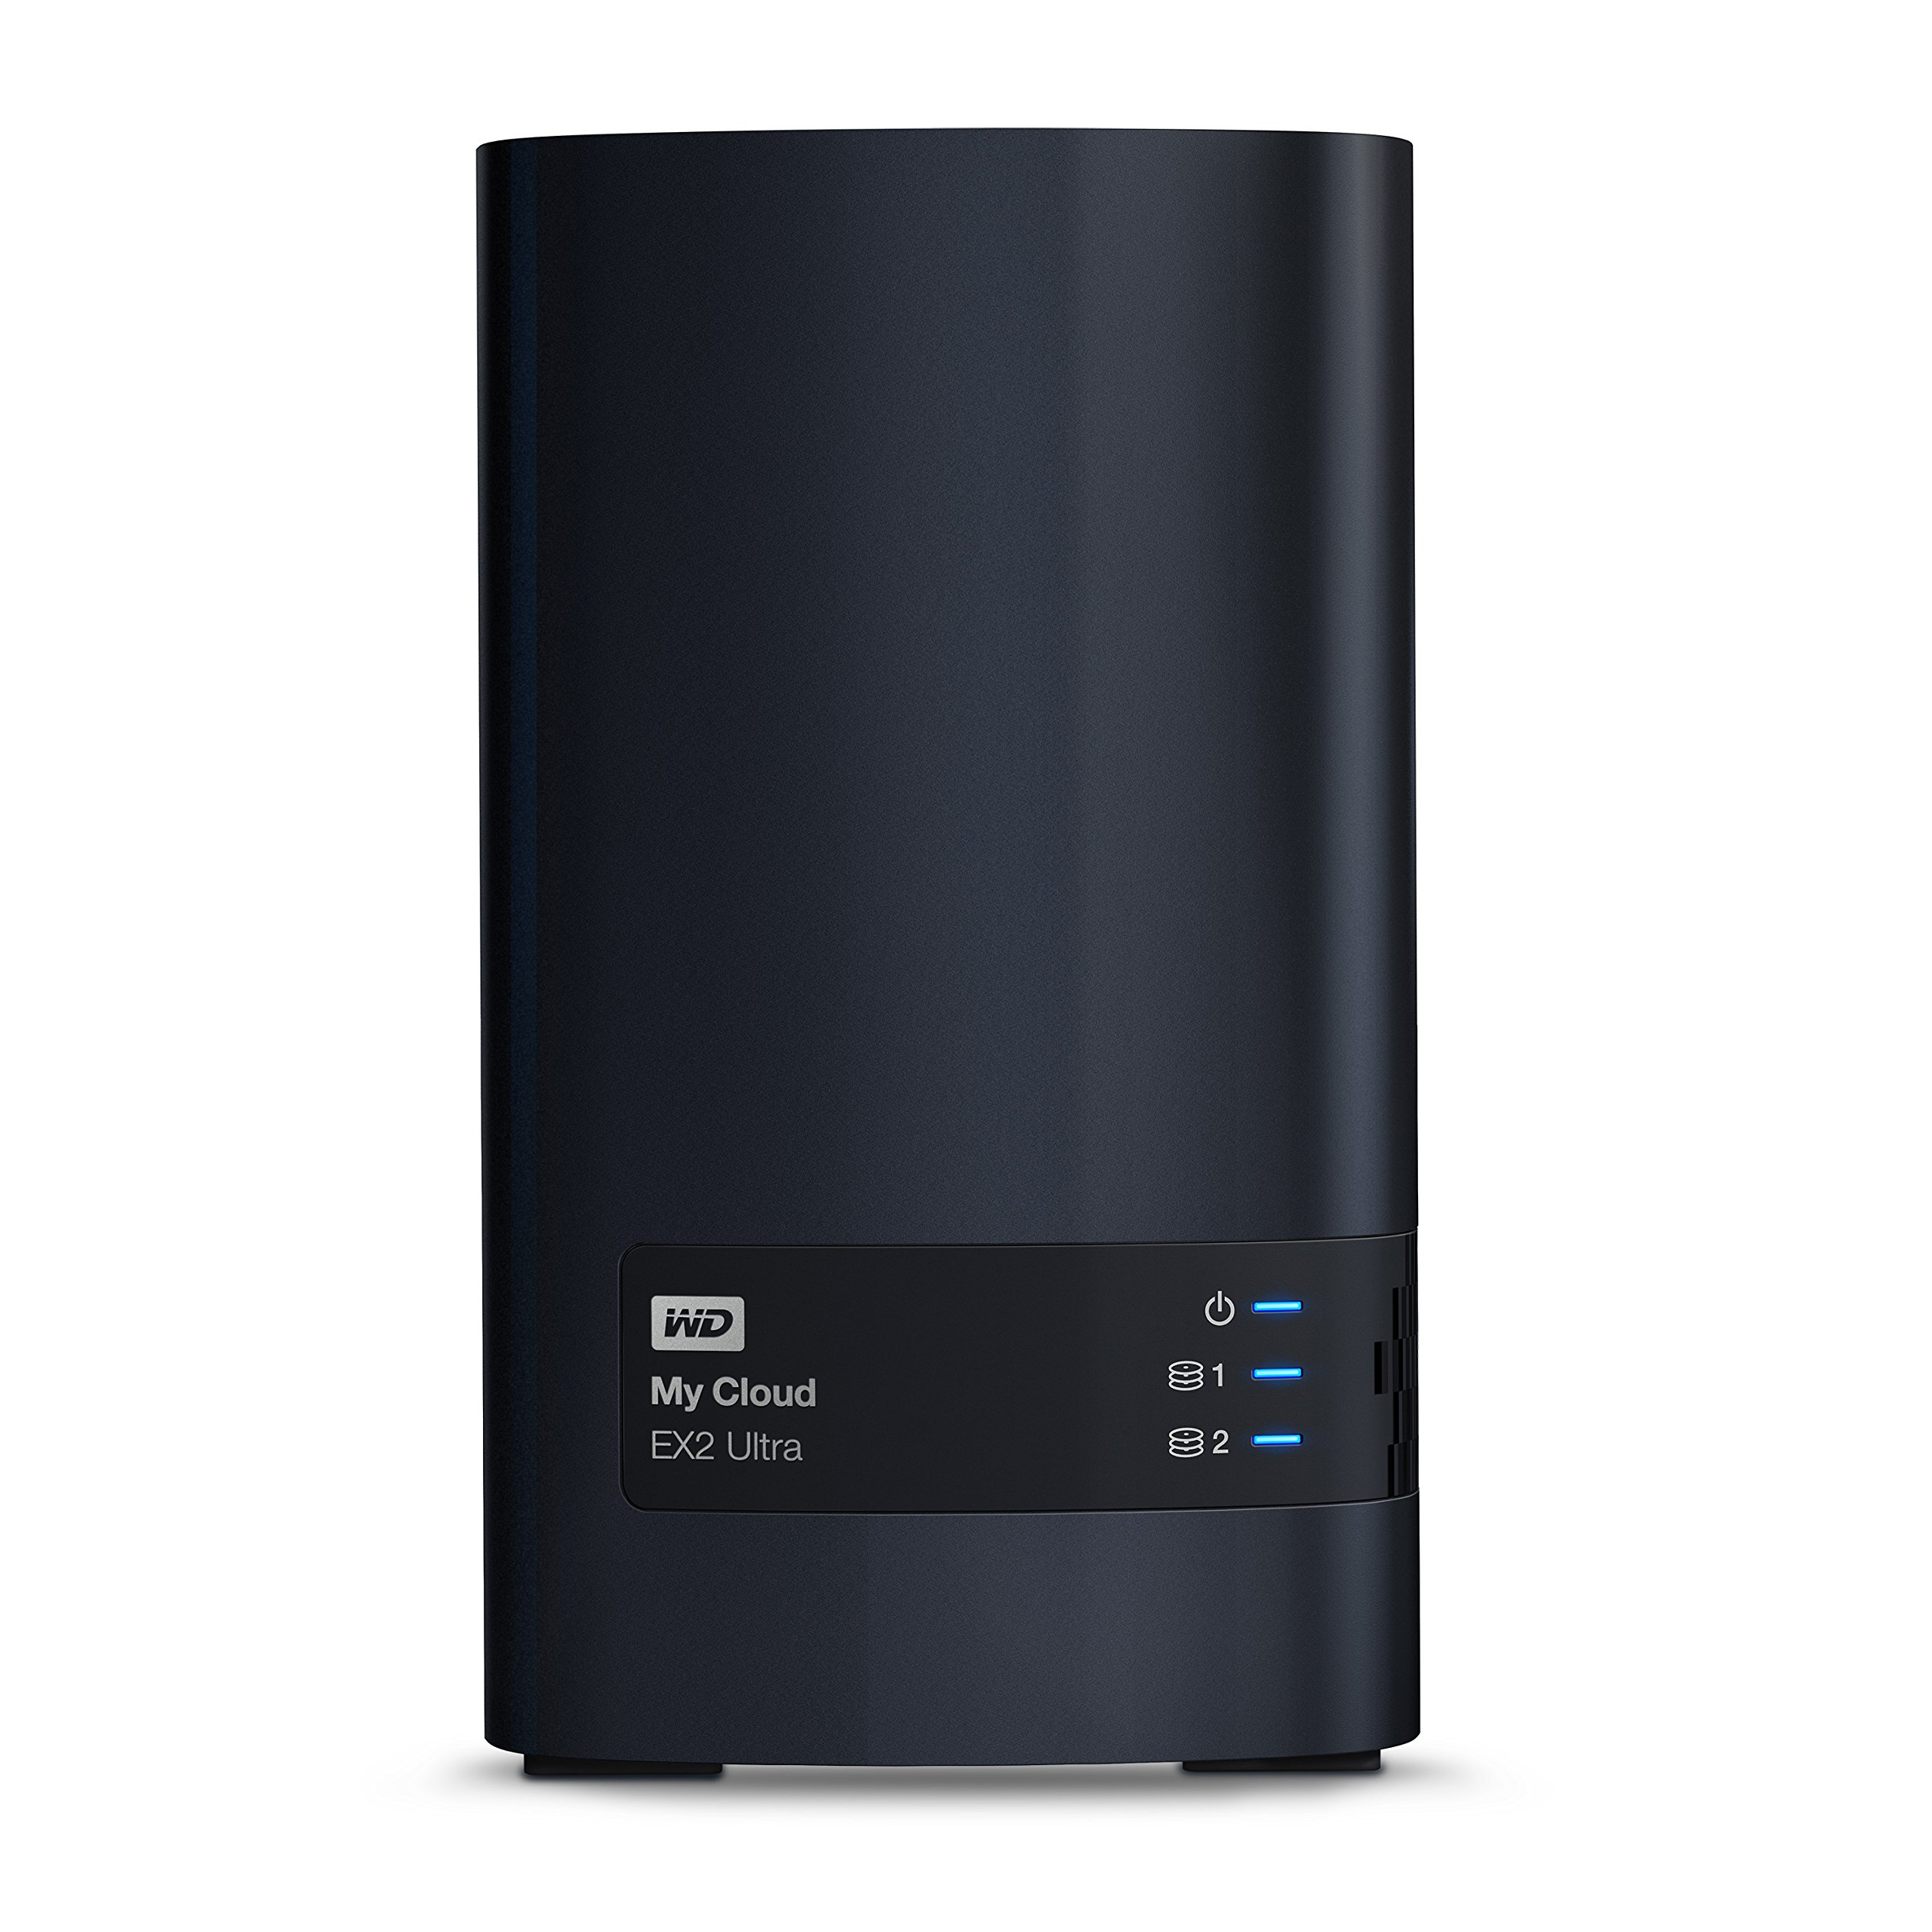 WD 4TB My Cloud EX2 Ultra Network Attached Storage - NAS - WDBVBZ0040JCH-NESN by Western Digital